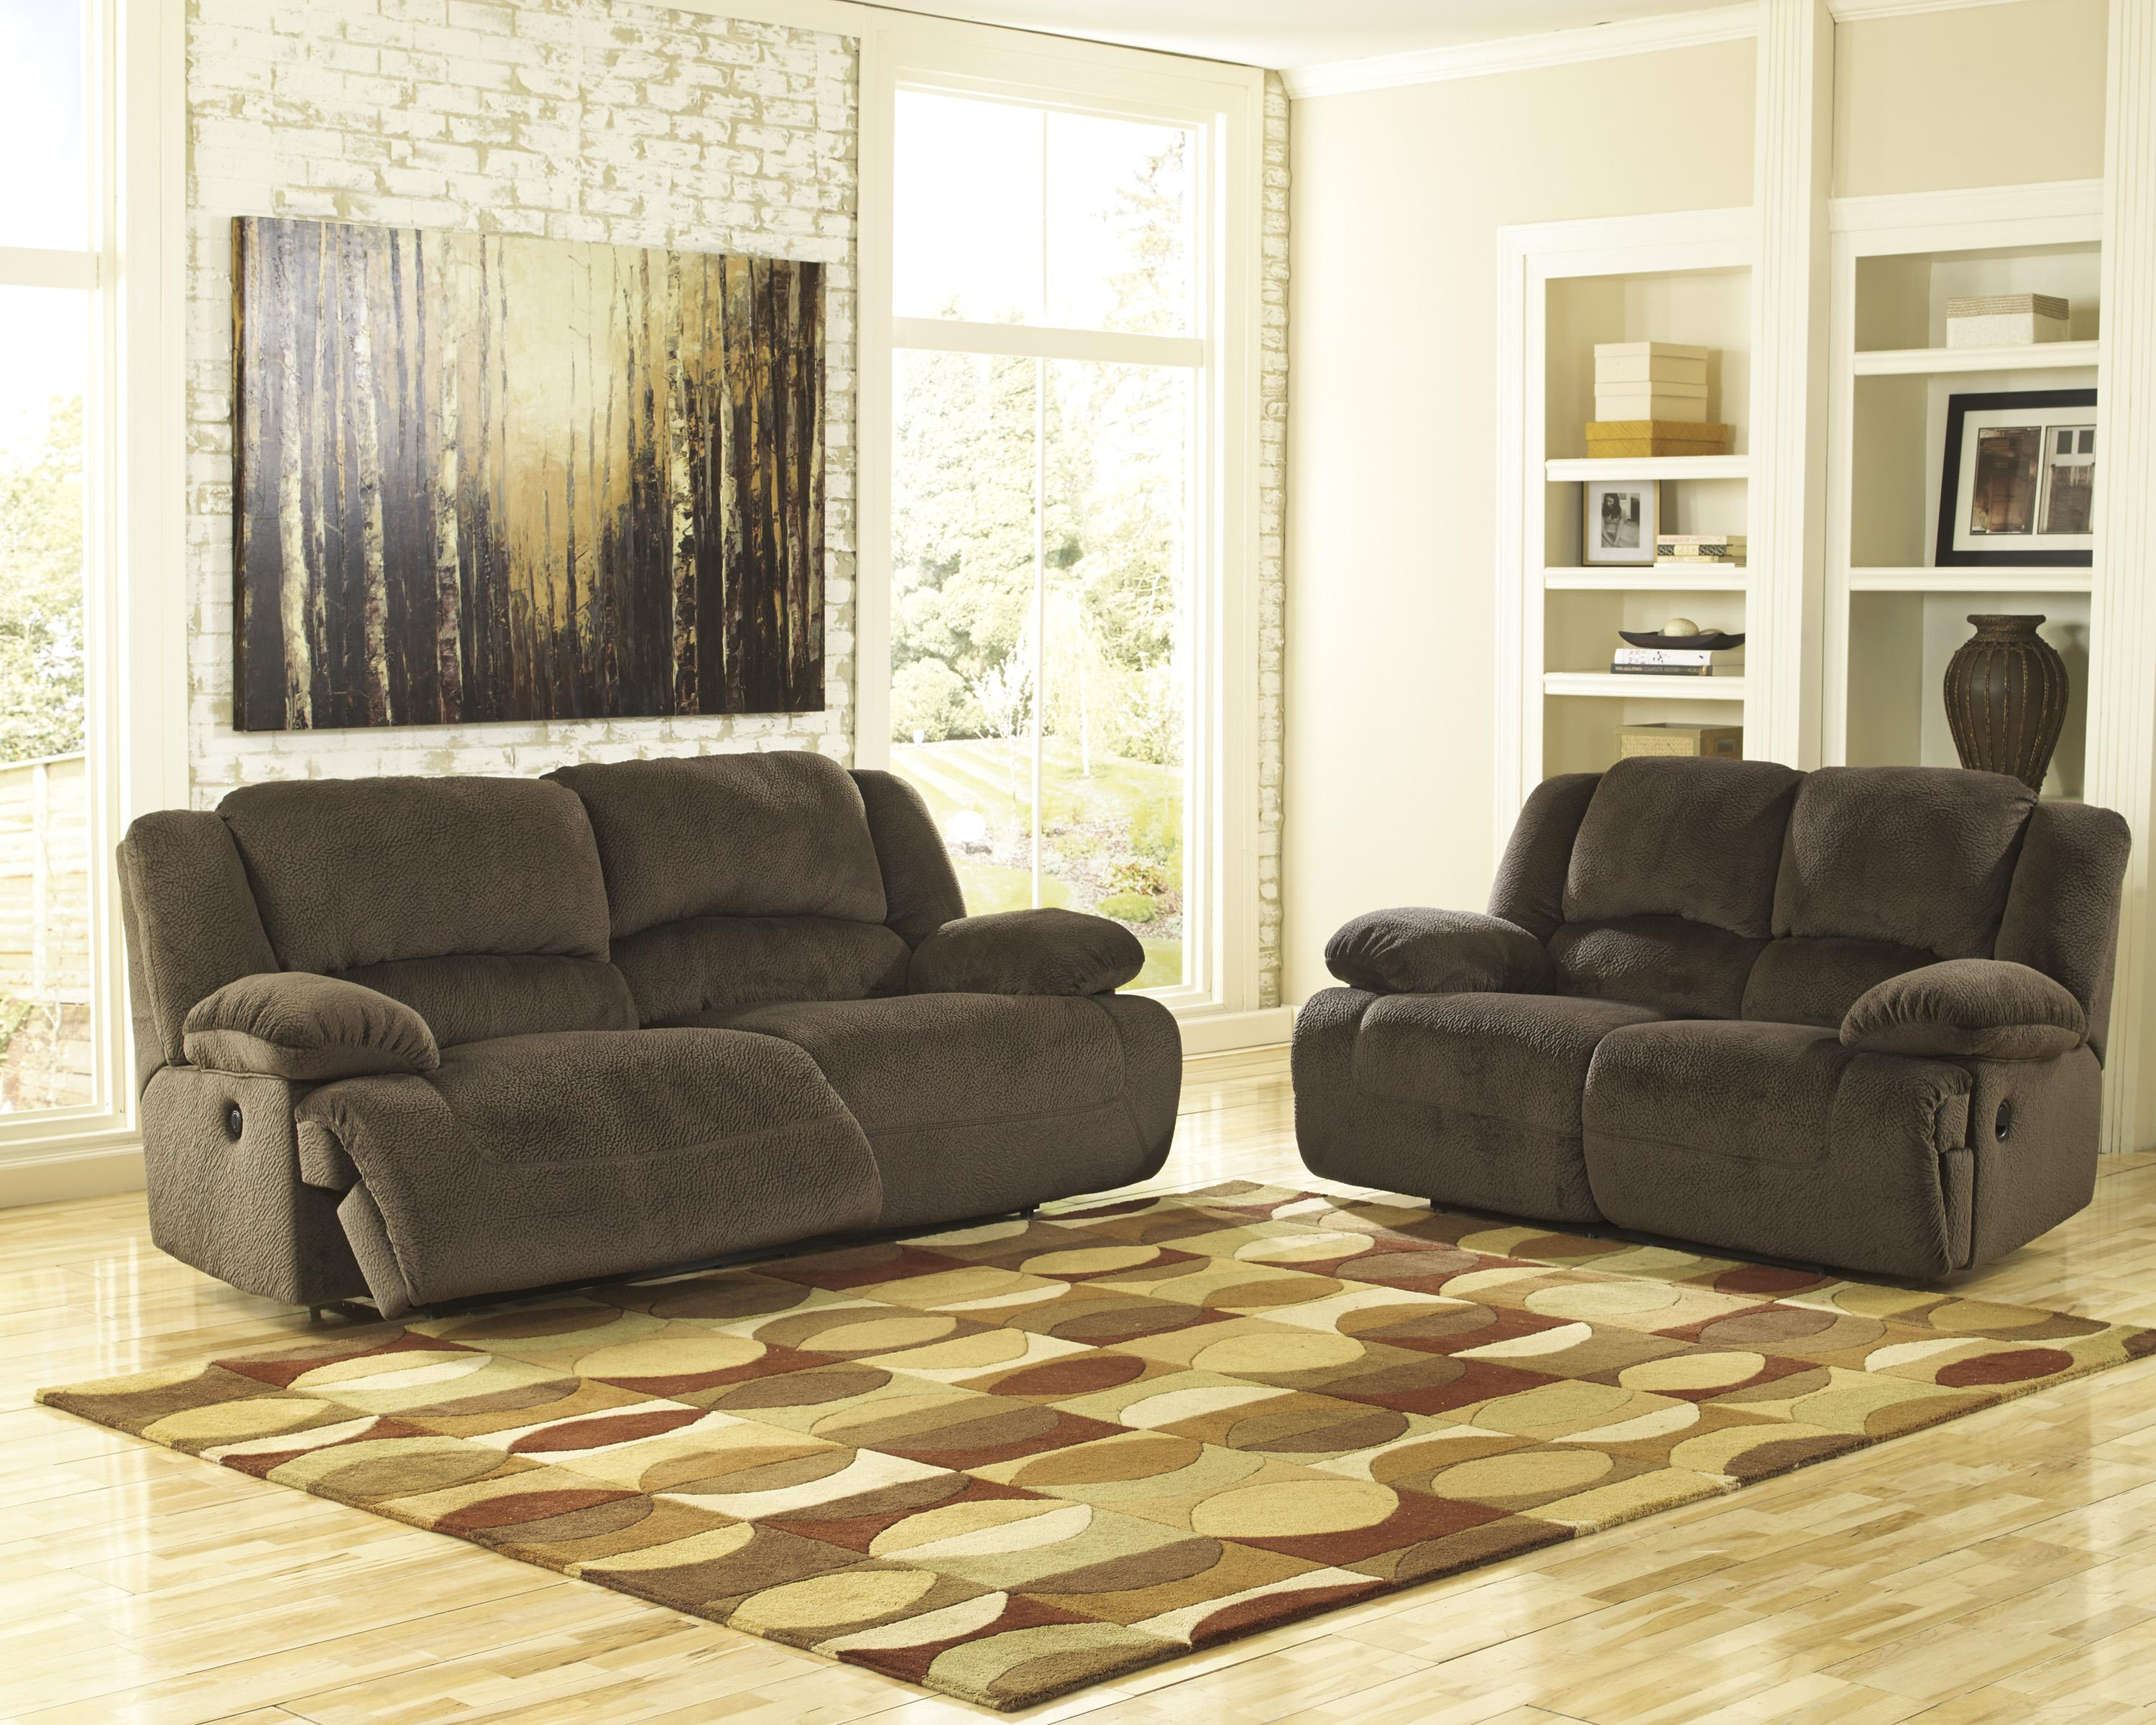 shaped with cheap sectional sale u couch chaise loveseats sofas furniture for ashley couches sleeper leather recliner loveseat sofa reclining ideas